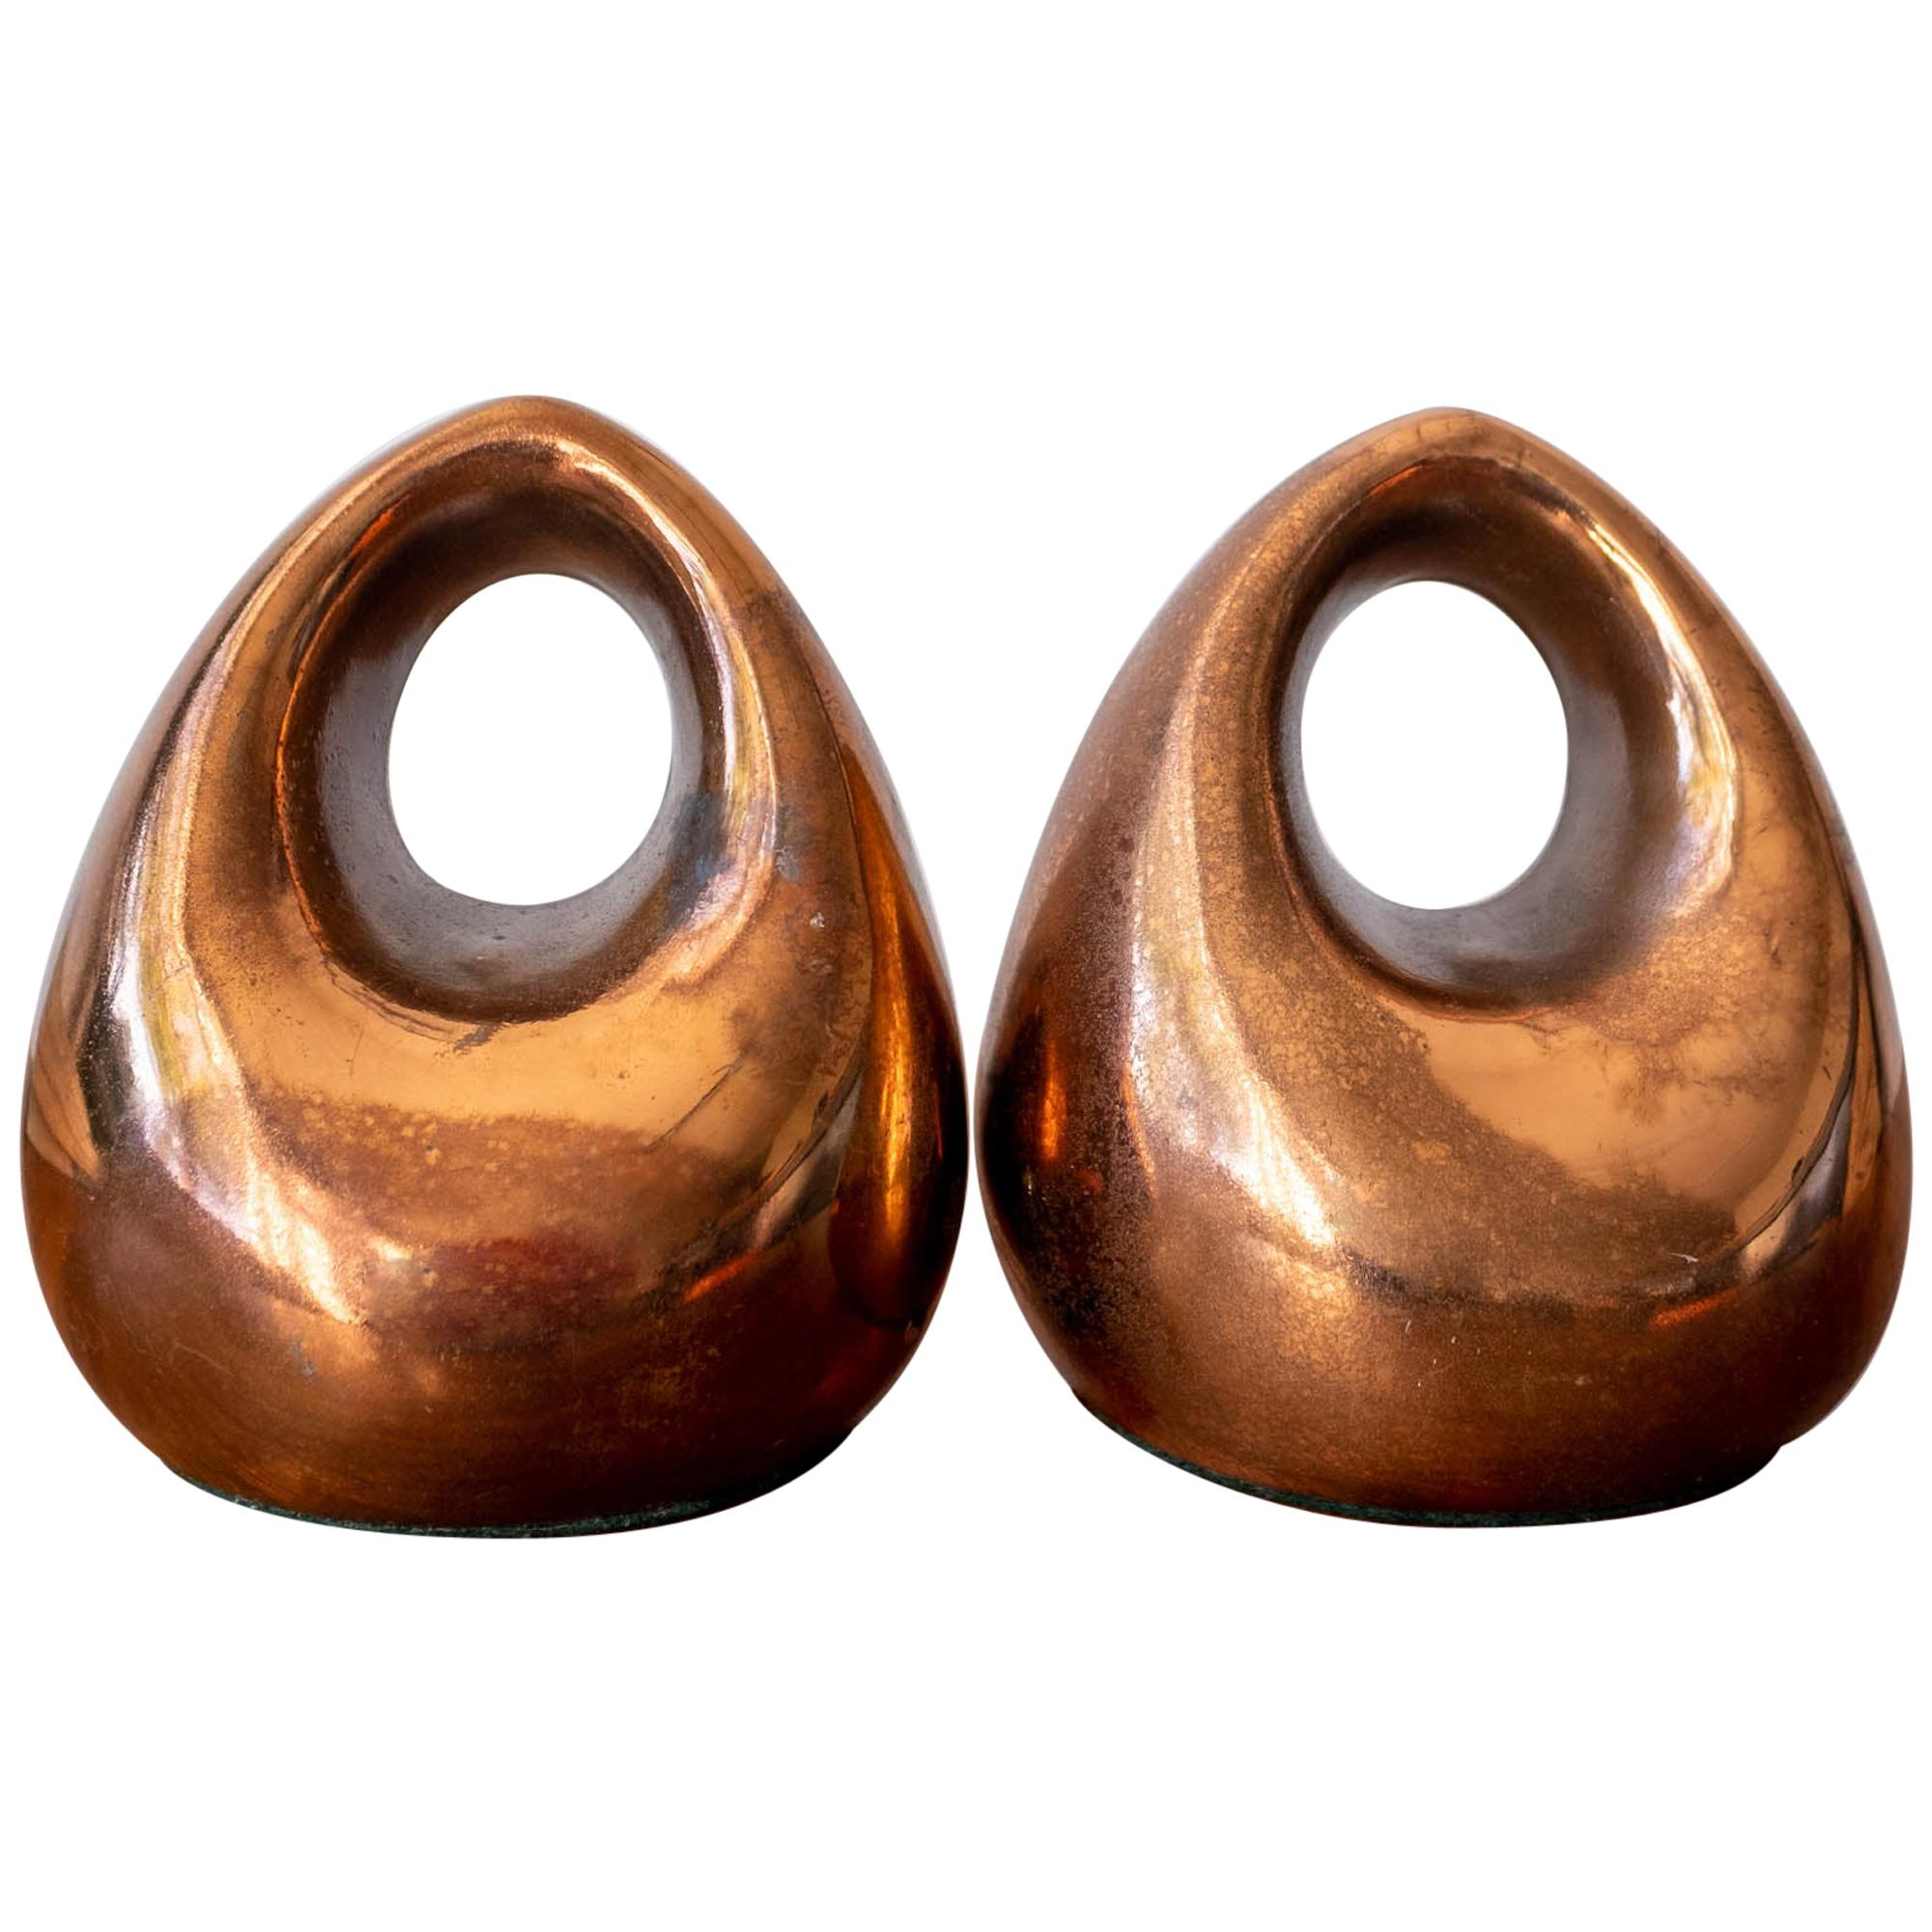 Copper Bookends by Ben Seibel for Jenfred-Ware